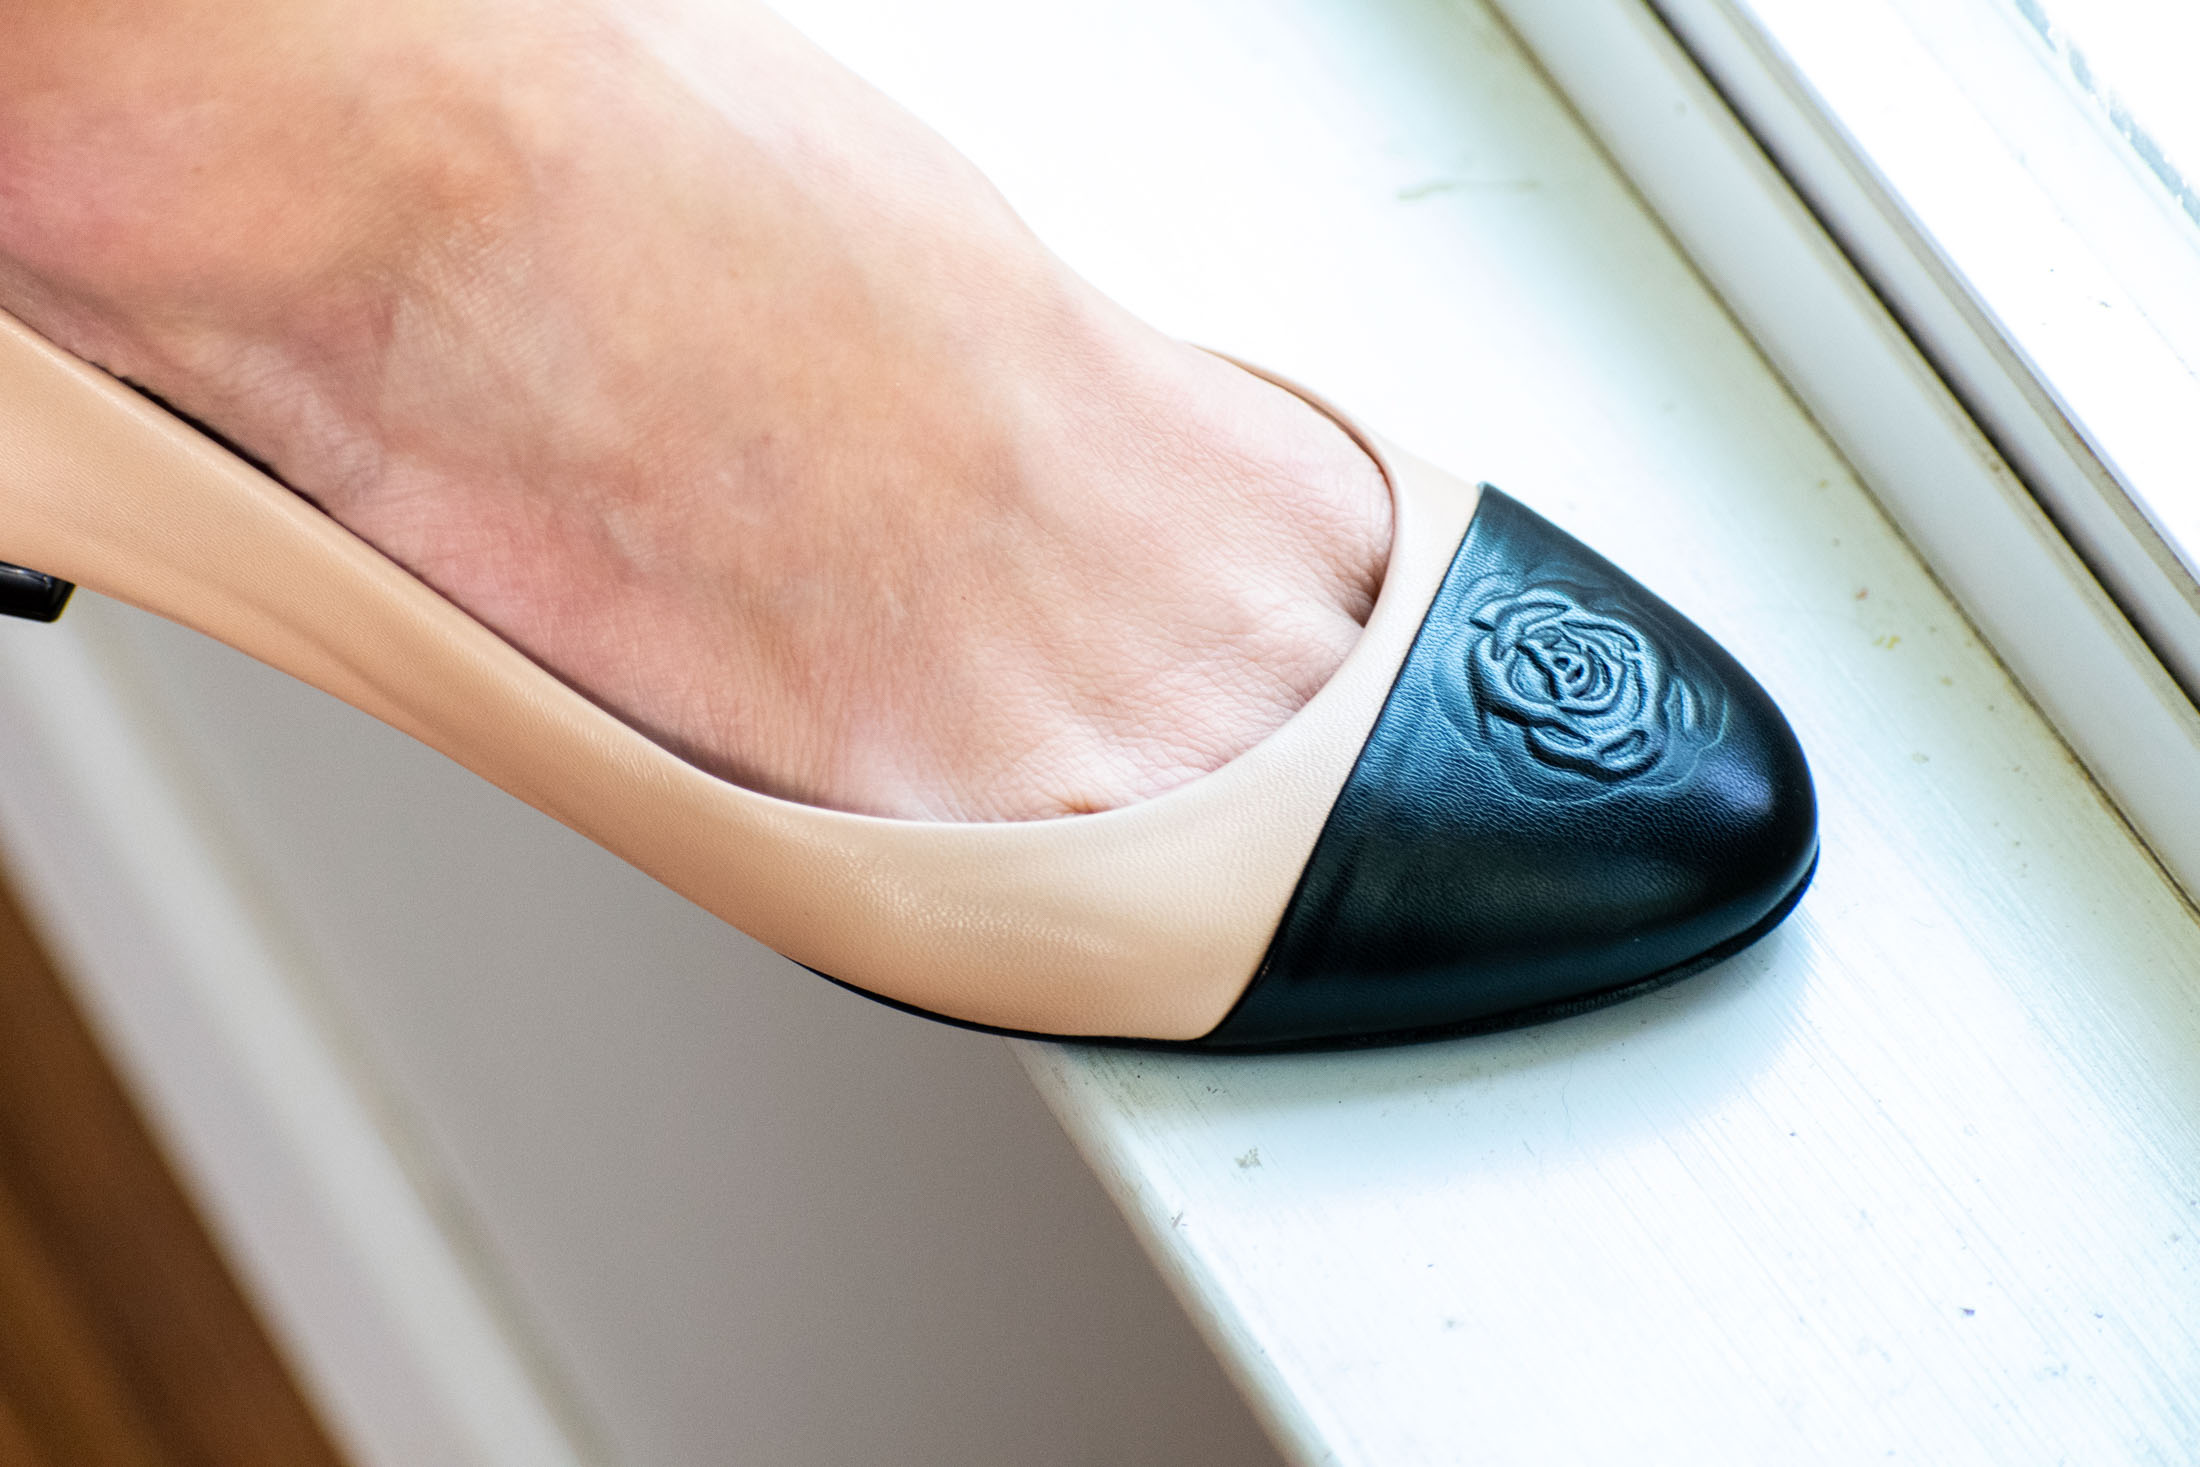 affordable chanel flats look